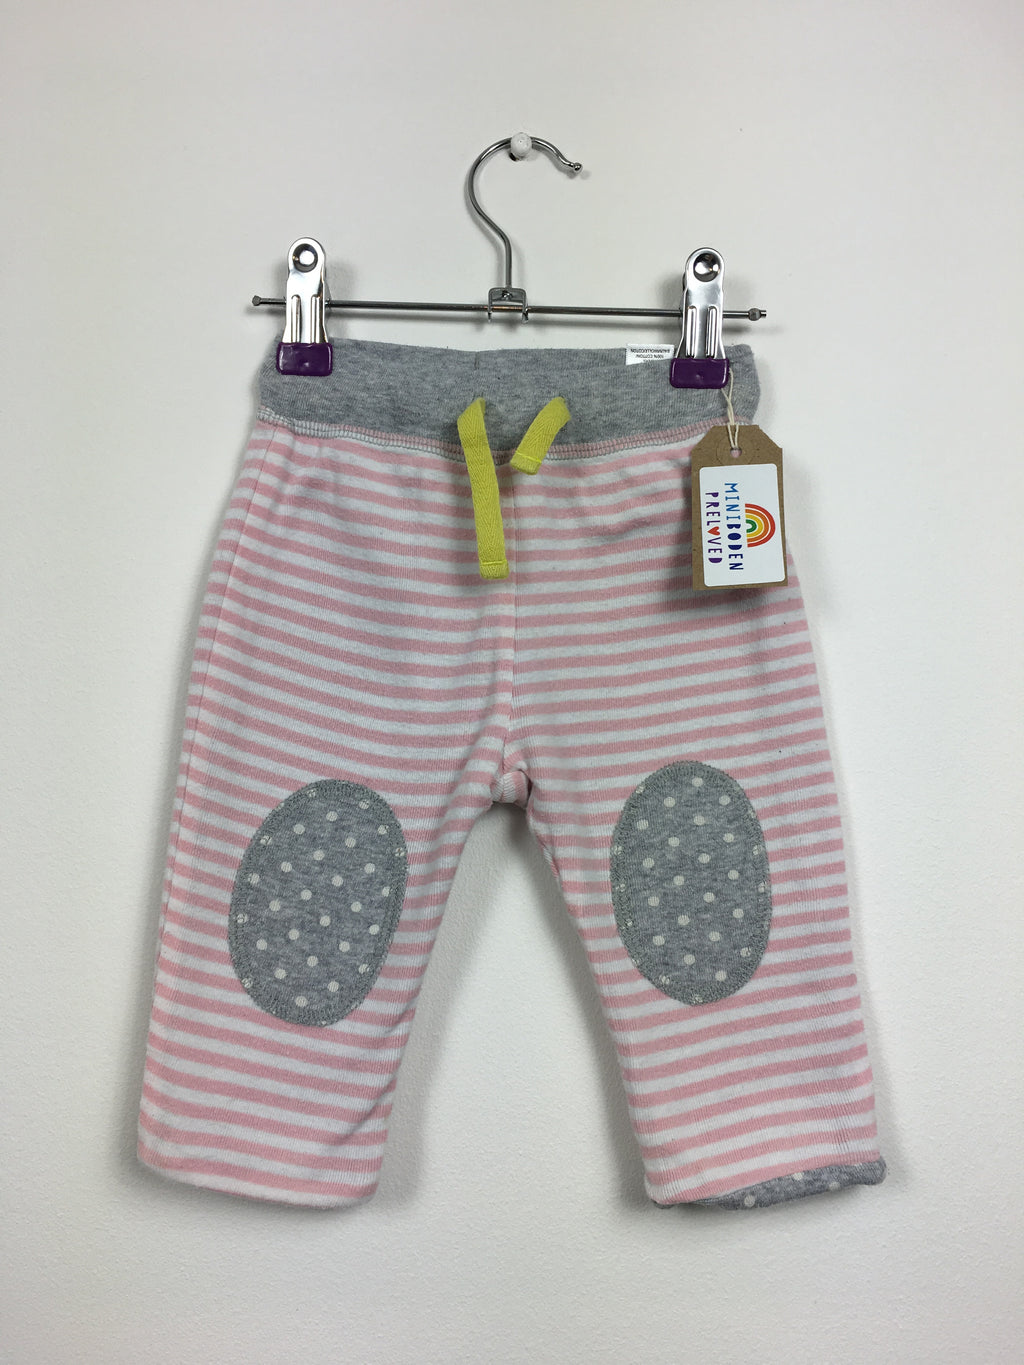 Stripes & Spots Reversible Joggers (3-6 Months)